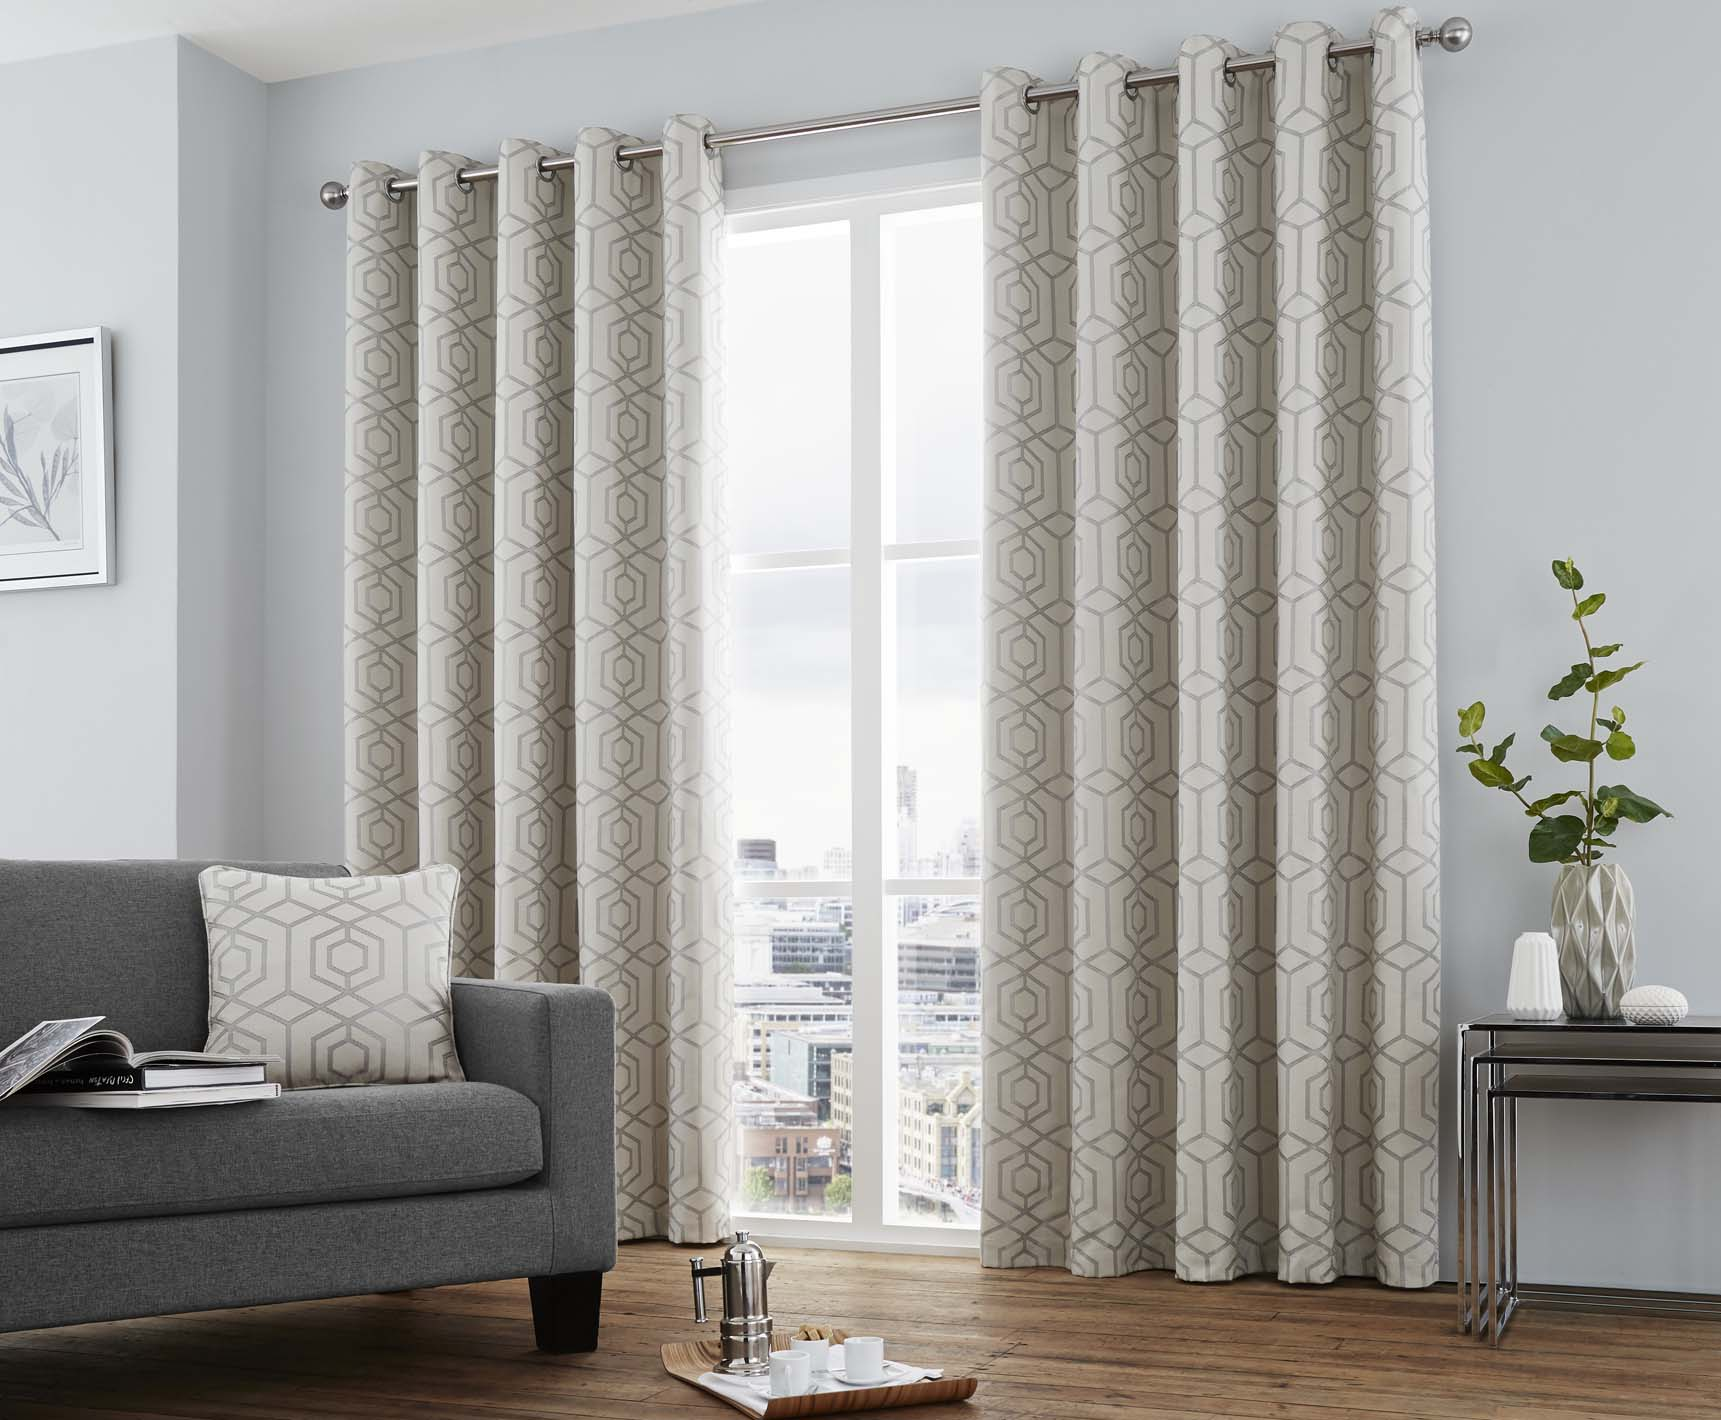 Camberwell Ready Made Lined Eyelet Curtains Silver, Currently Reduced To